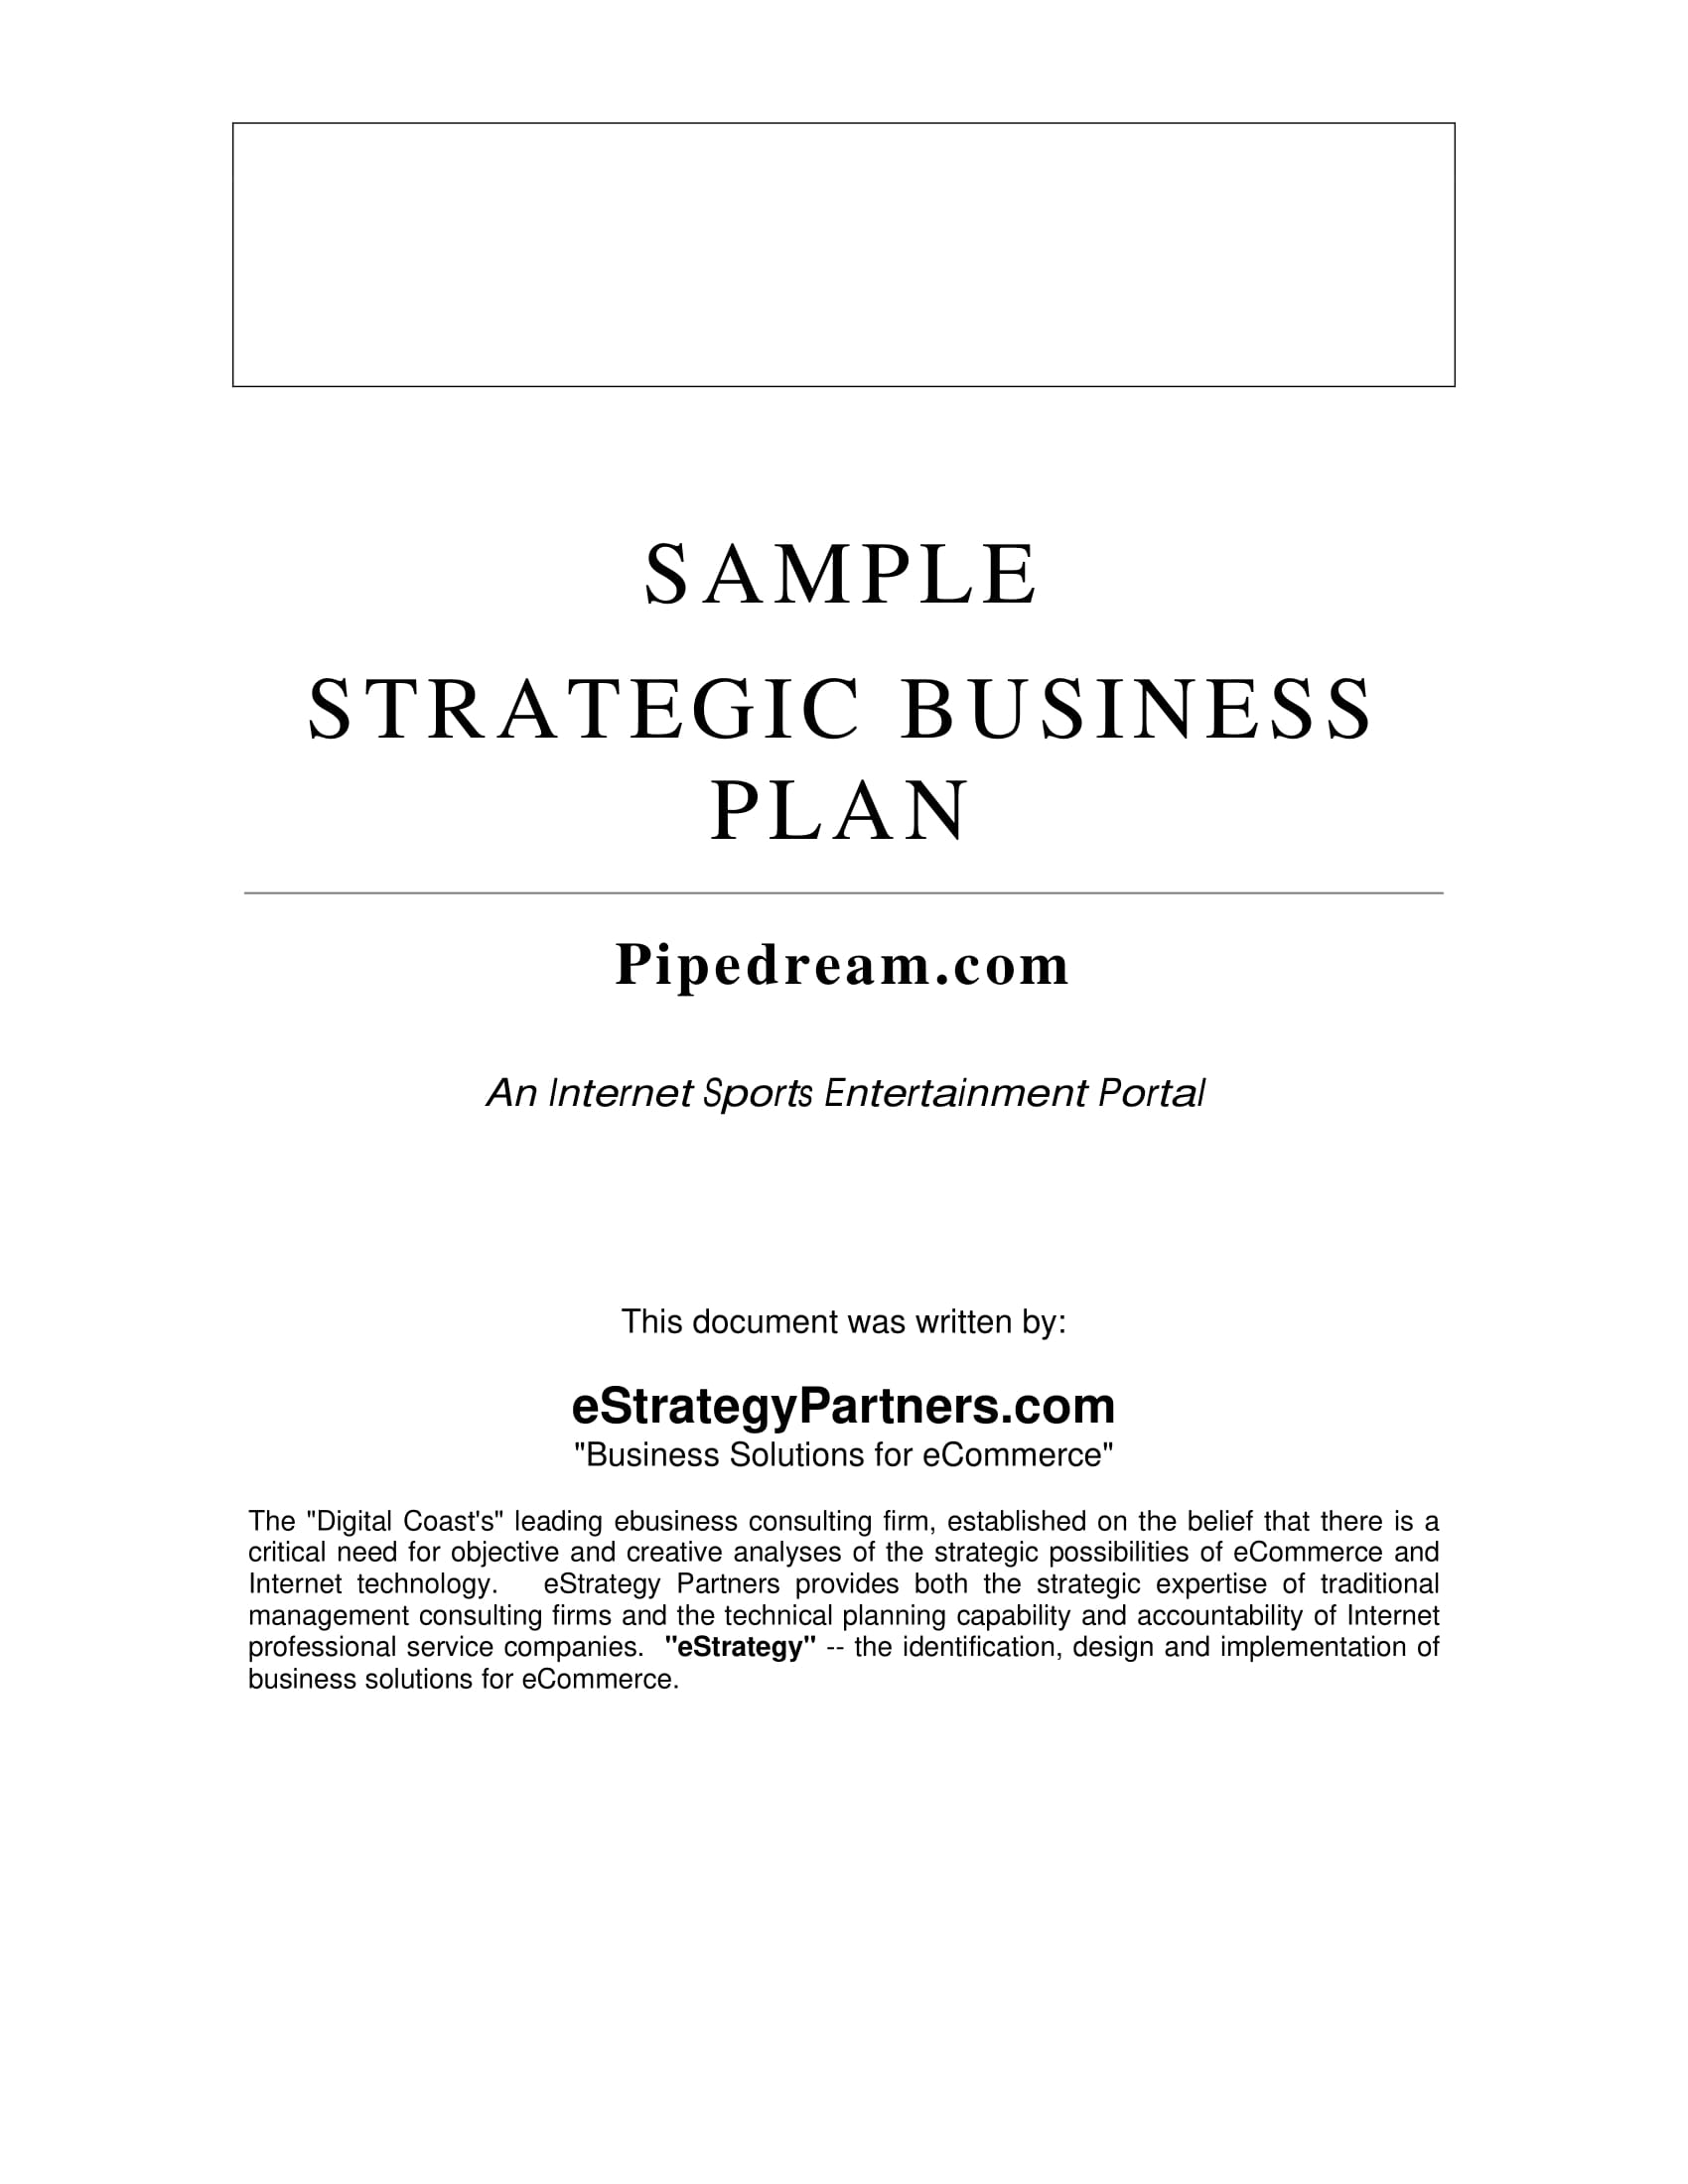 Business development strategy plan template